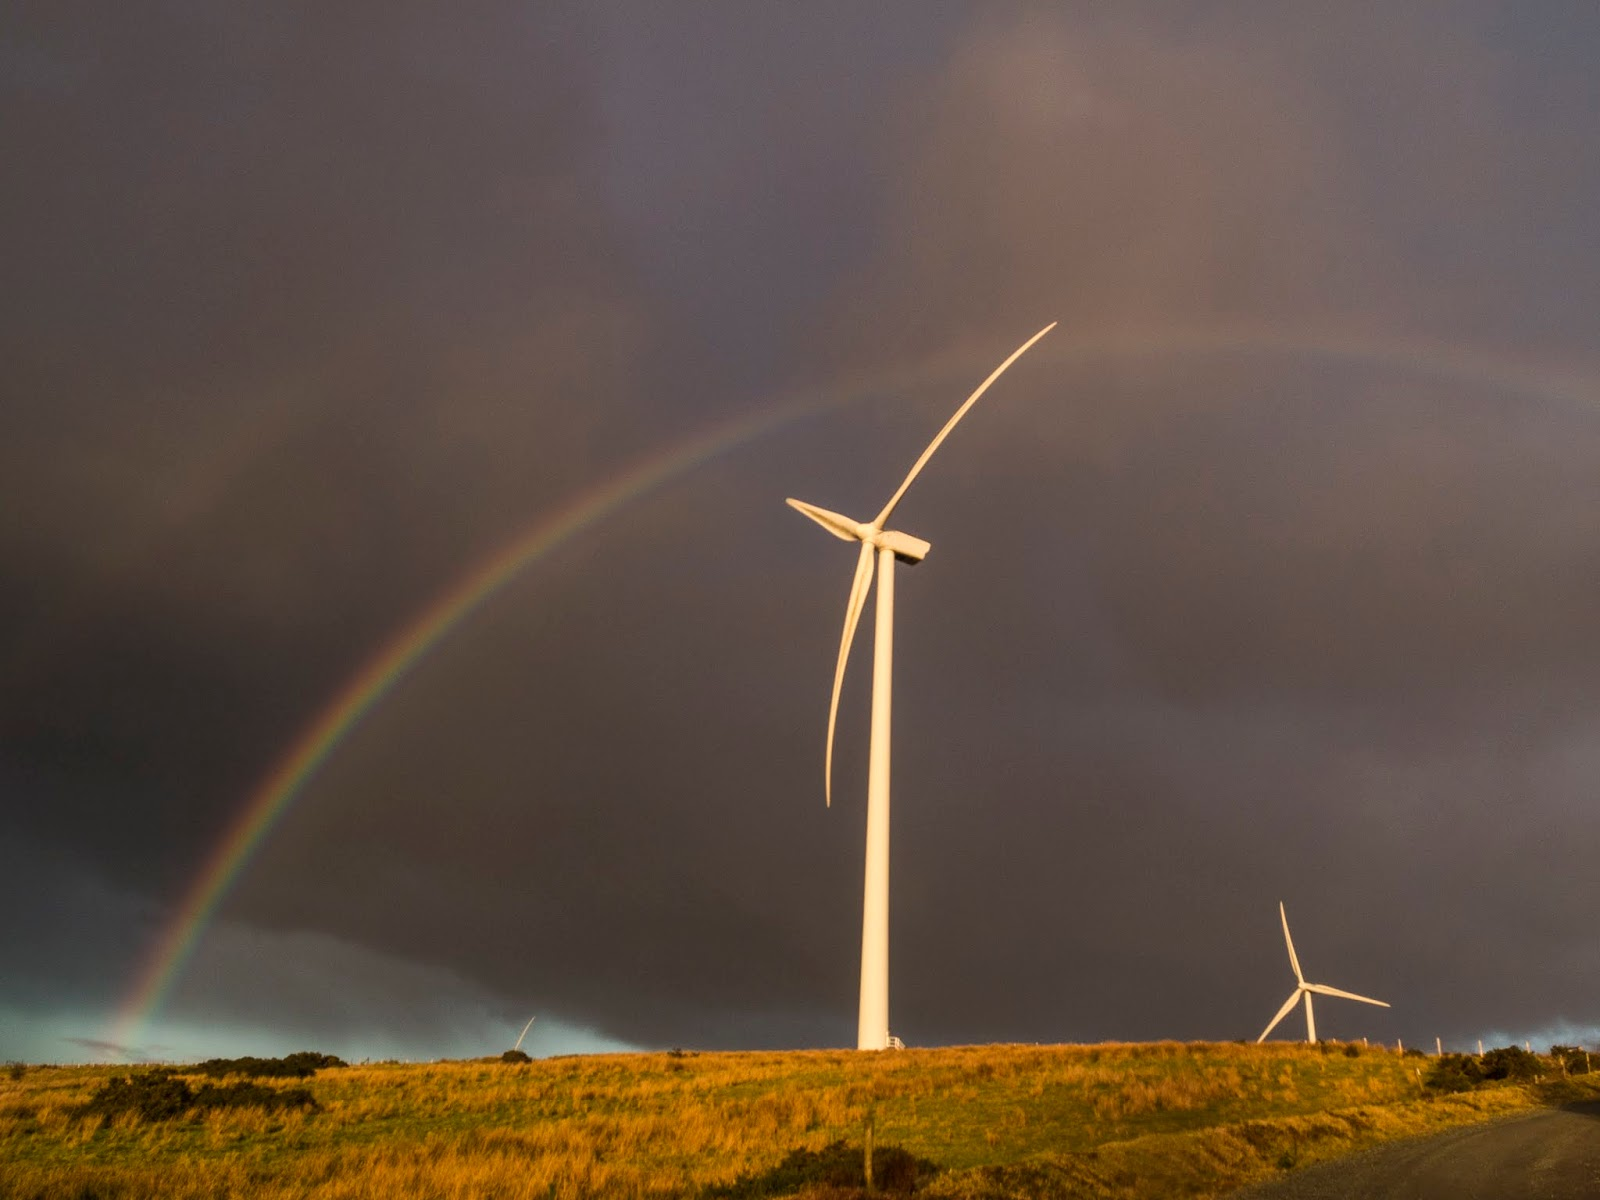 A double rainbow over a windmill in the sunlight with dark clouds above.